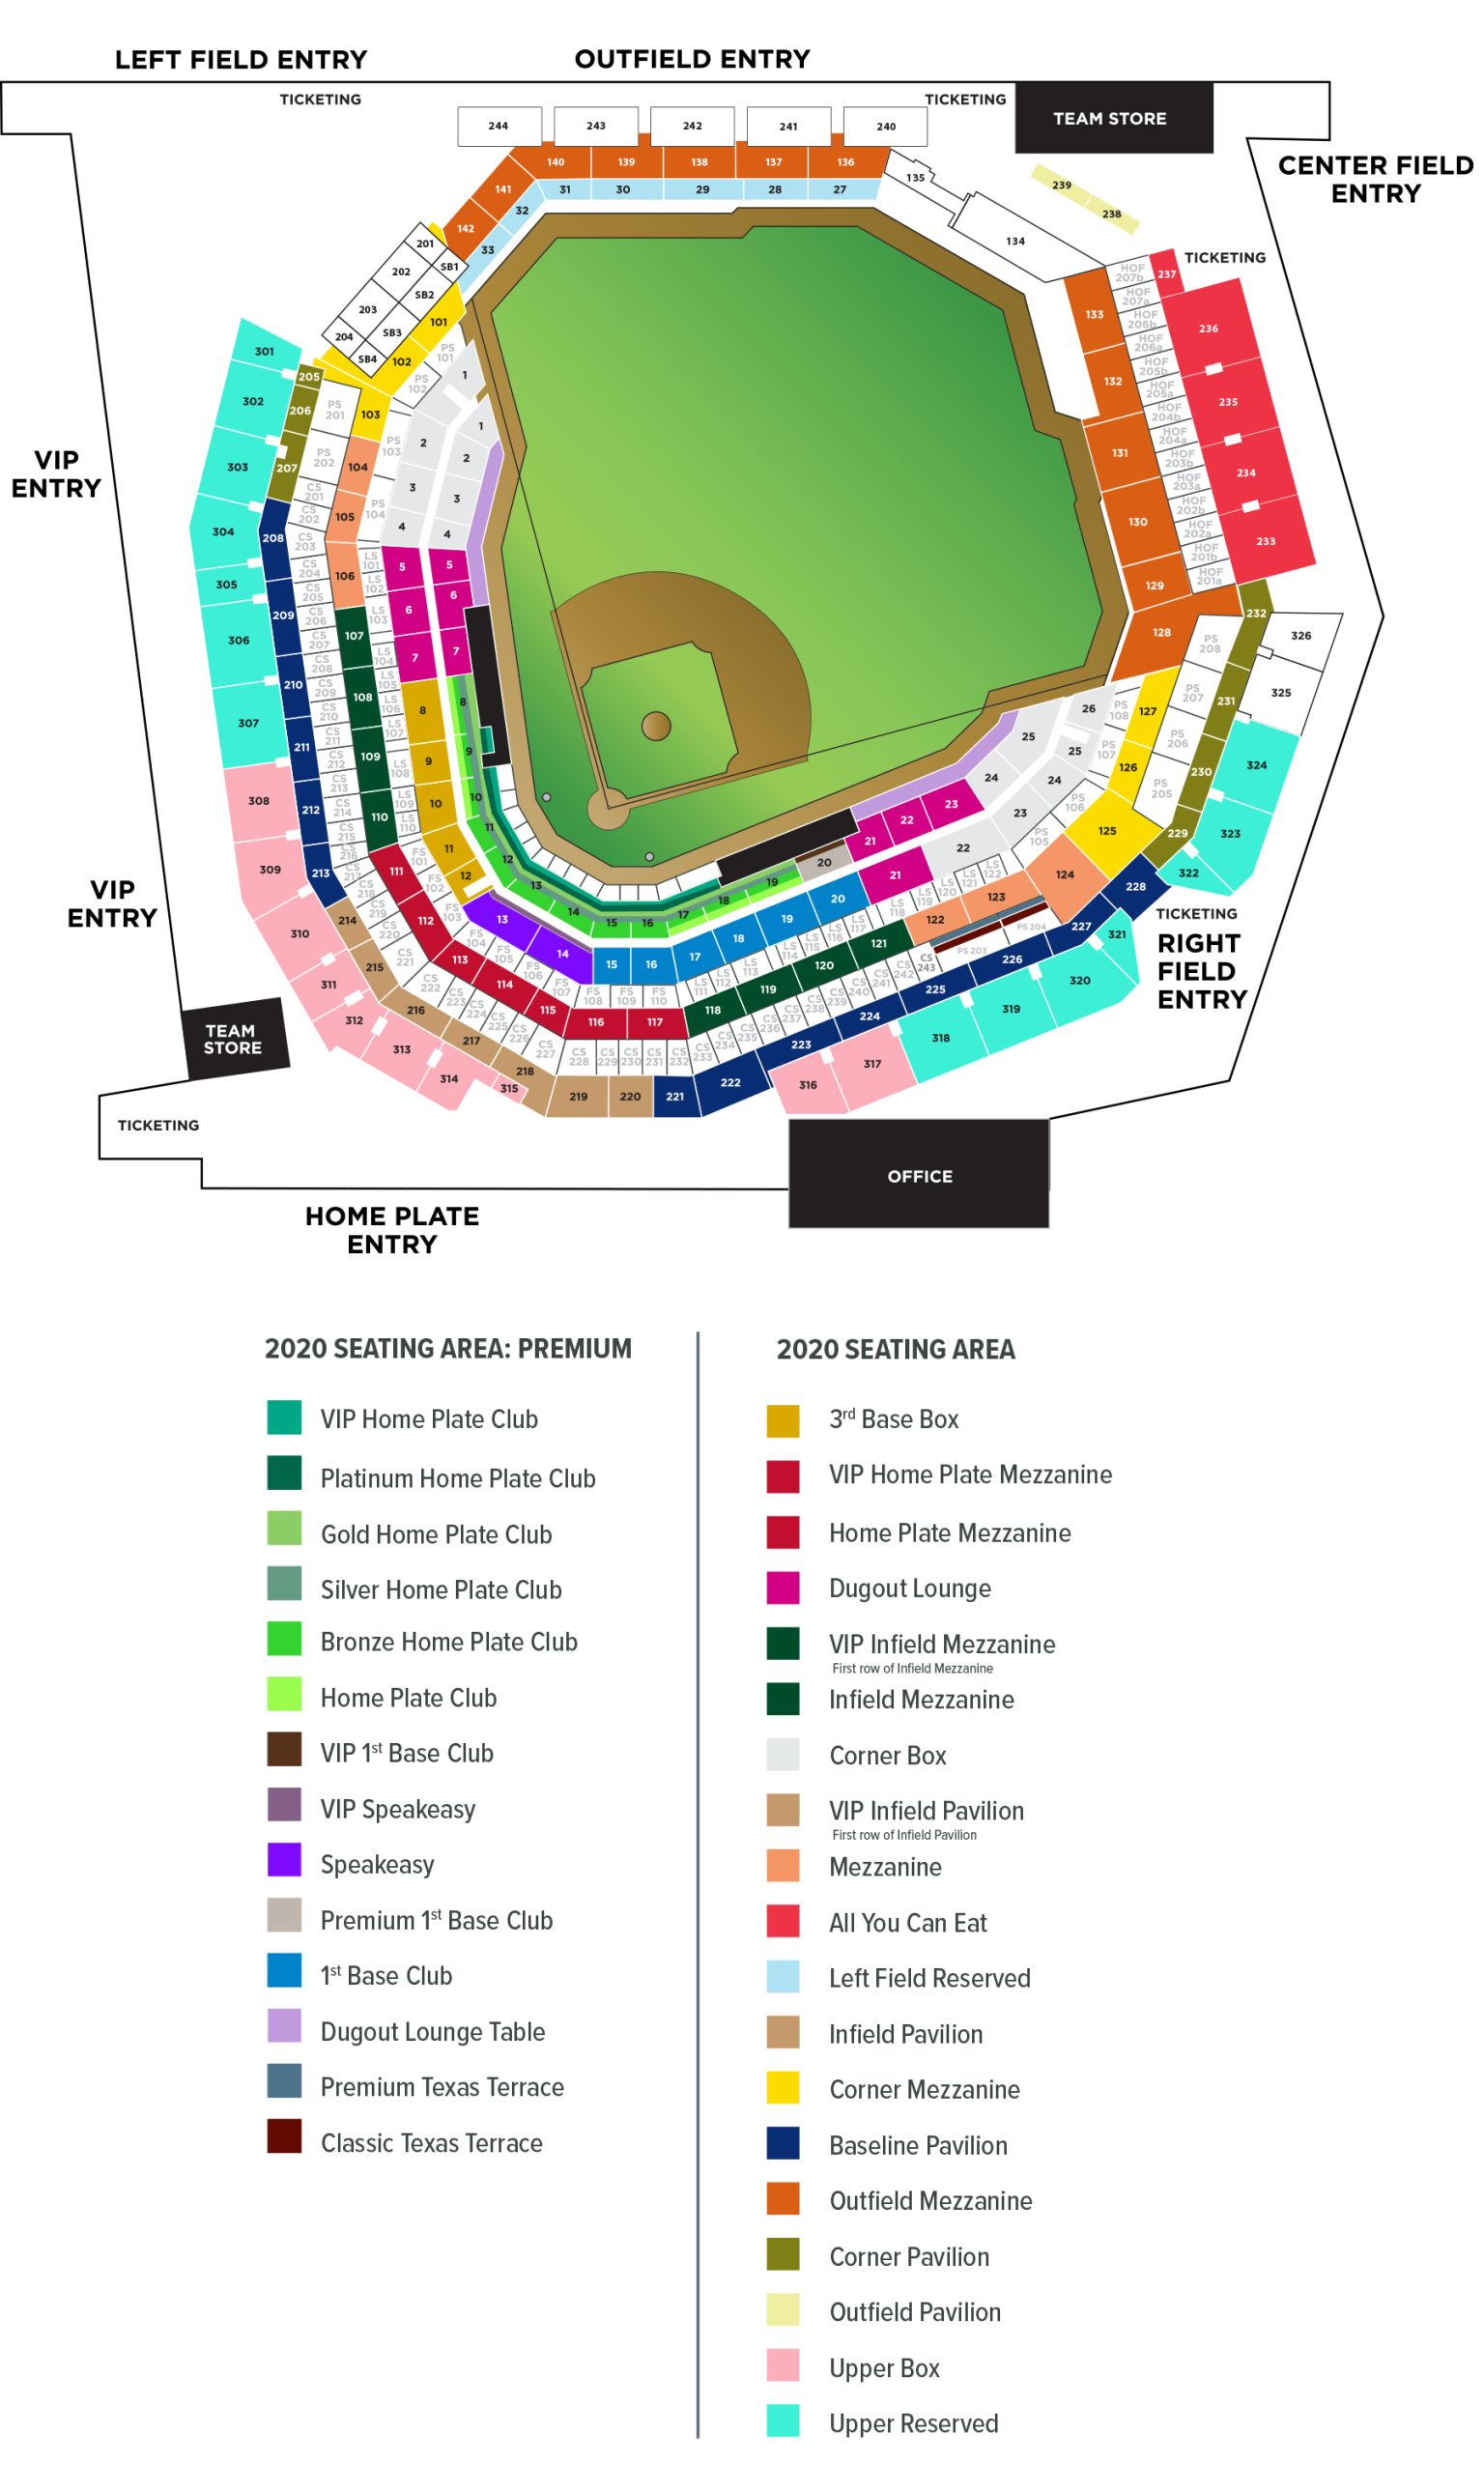 Citizens Bank Park Seating Chart : citizens, seating, chart, Globe, Field, Pictures,, Information, Future, Texas, Rangers, Ballpark